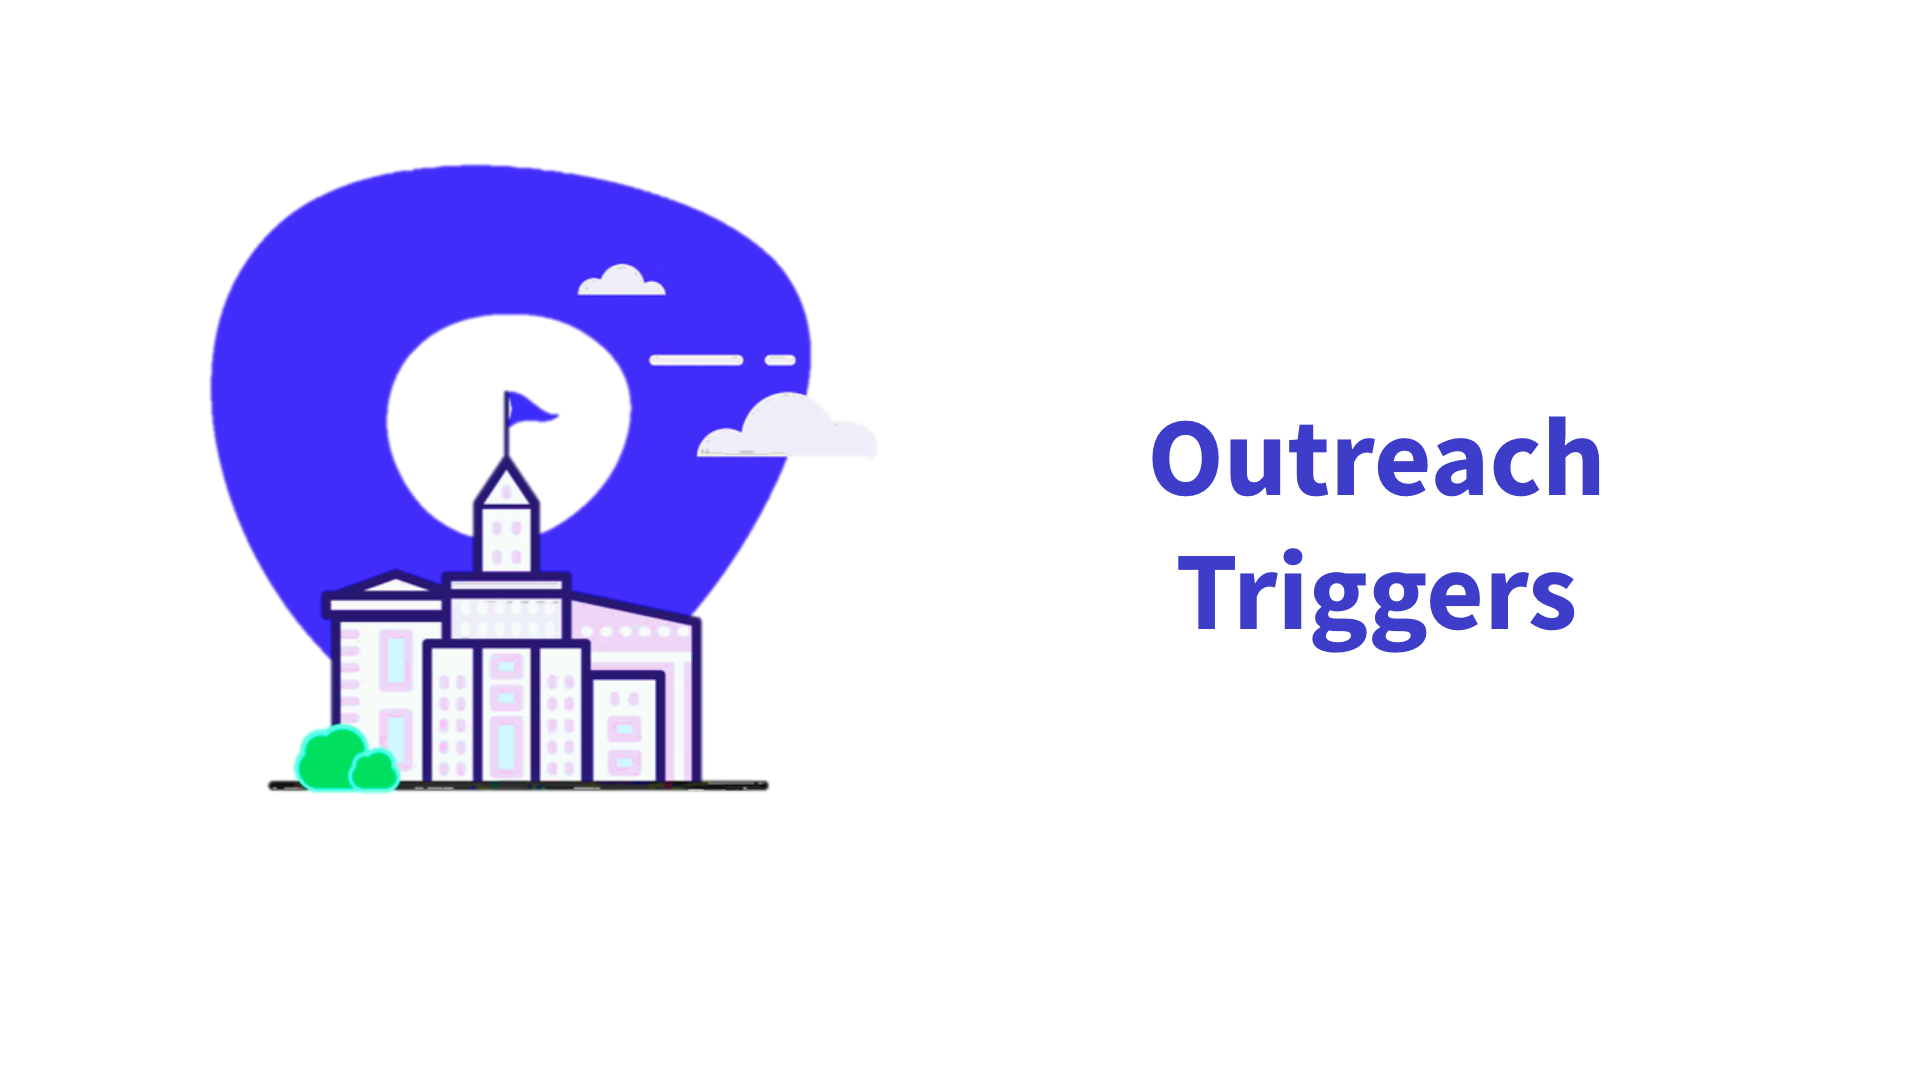 Outreach Triggers